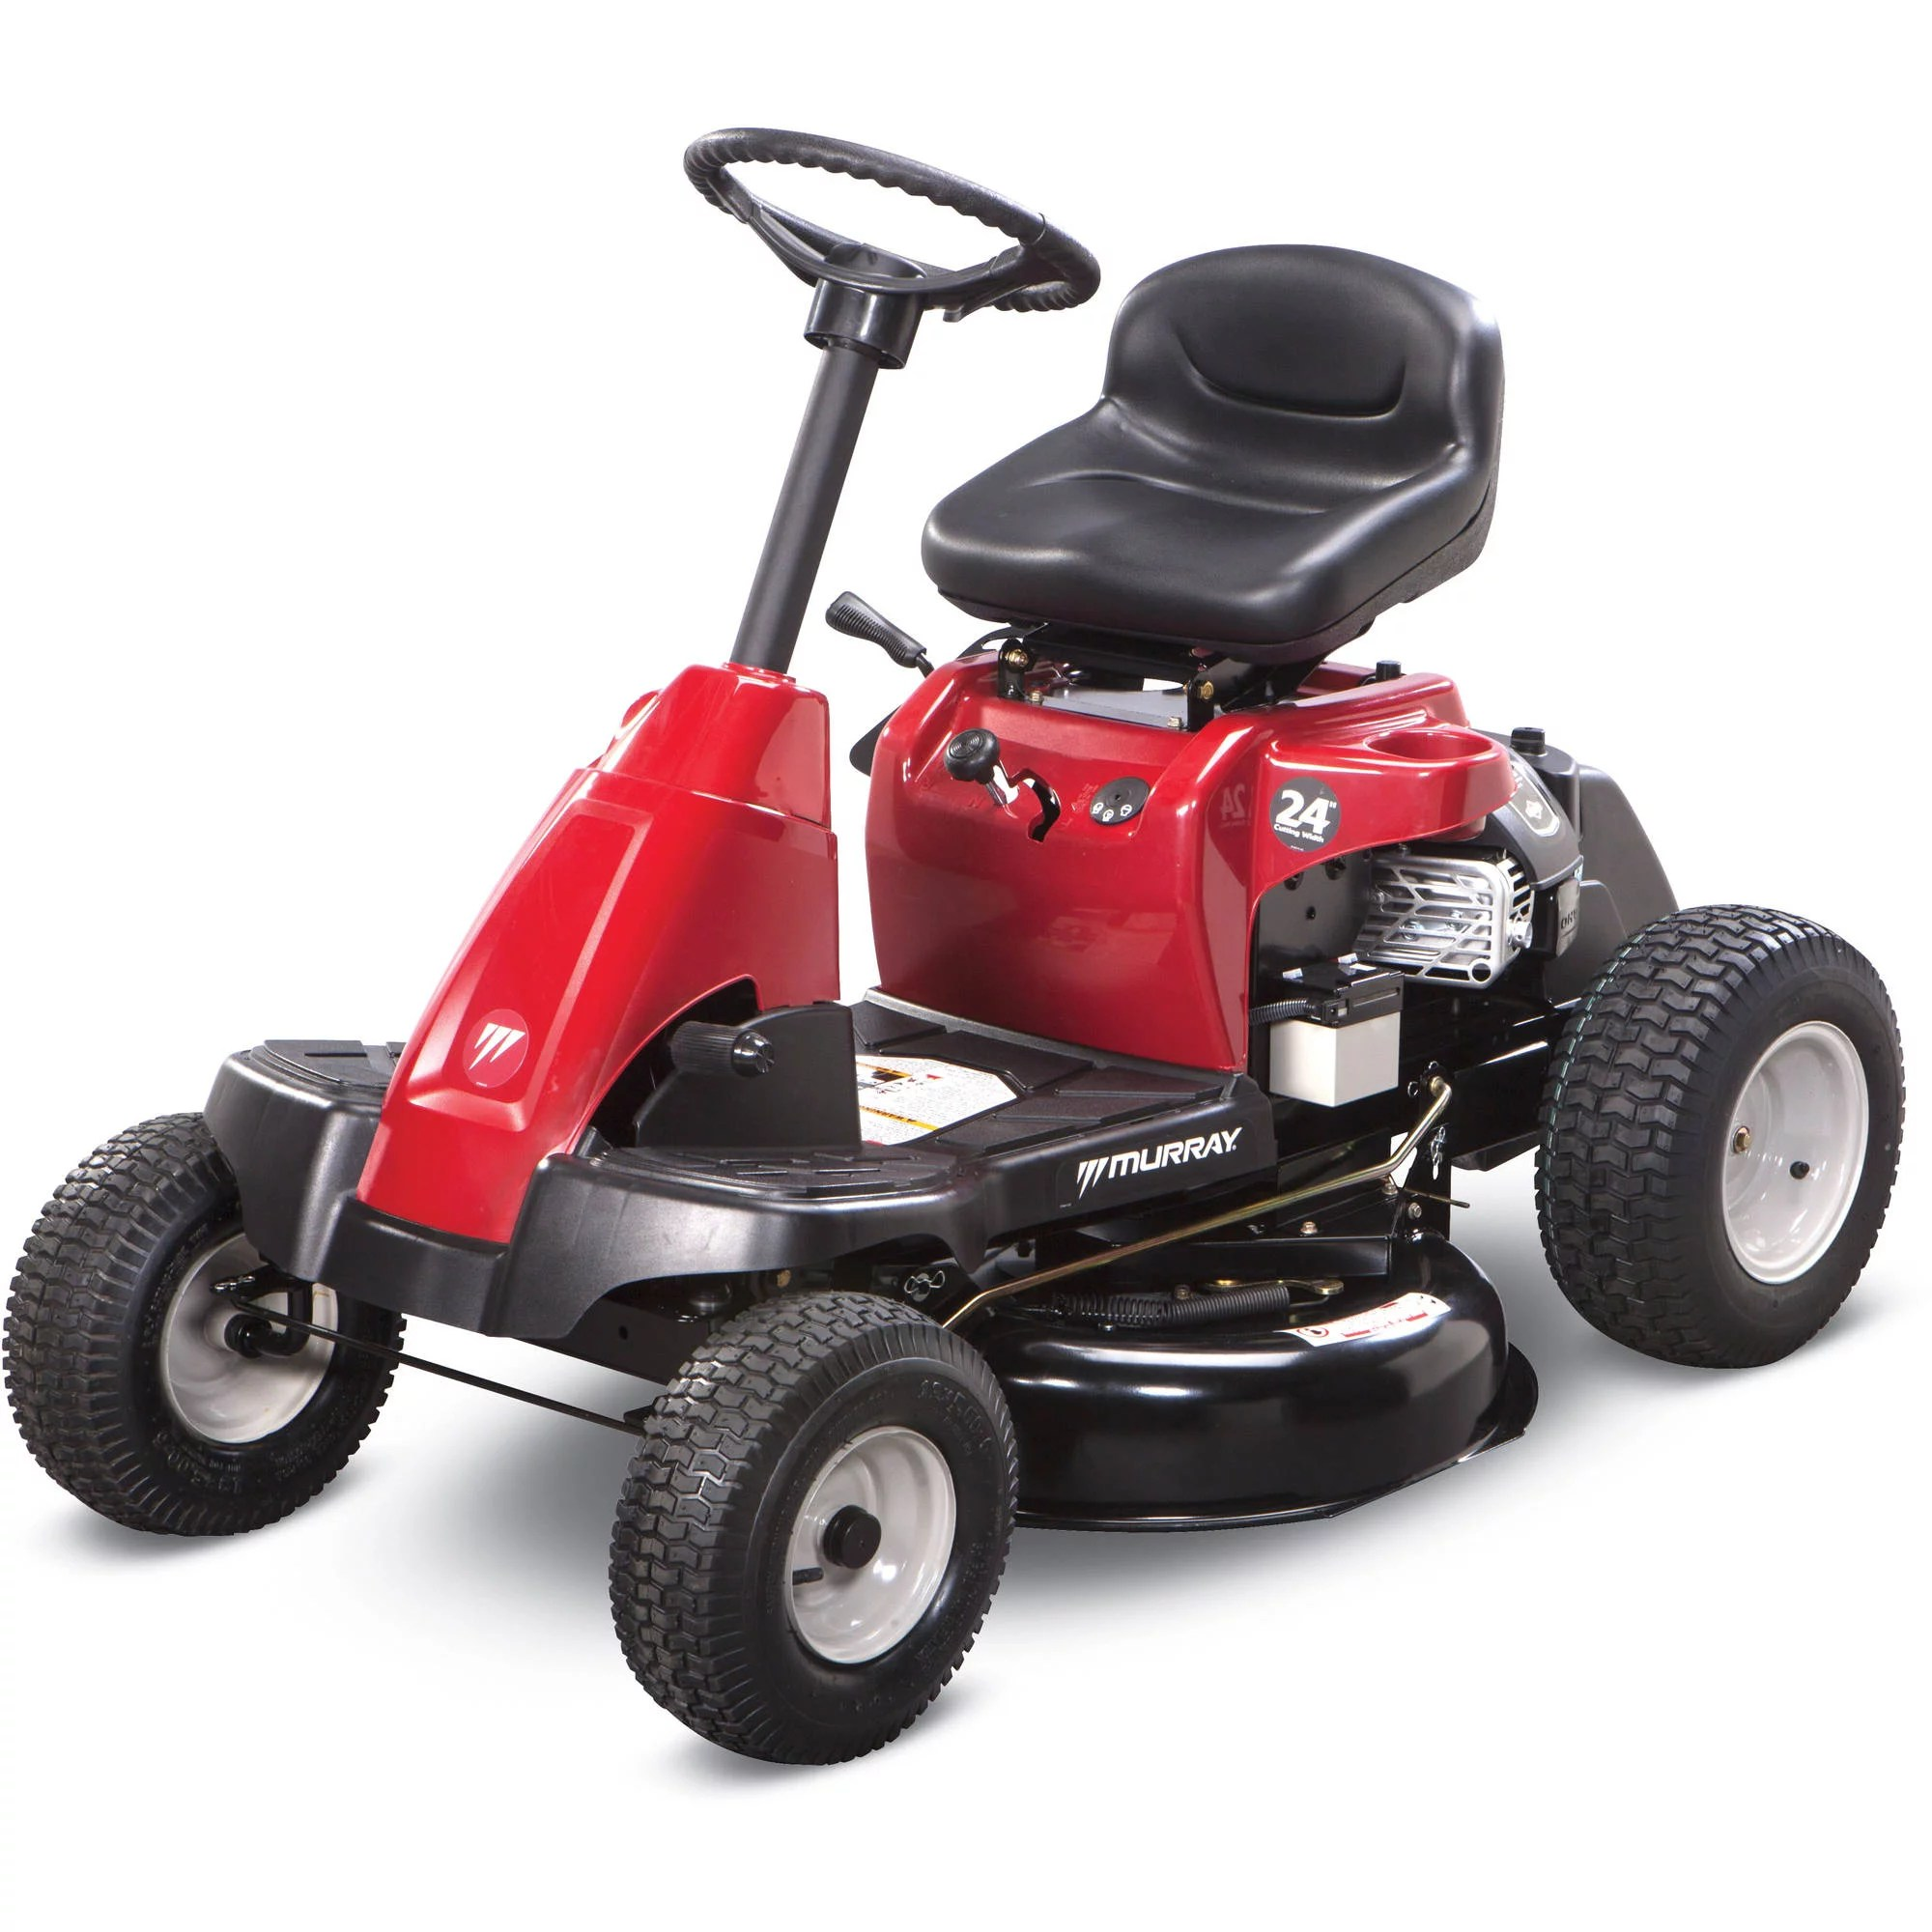 hight resolution of murray 24 rear engine riding mower with mulch kit